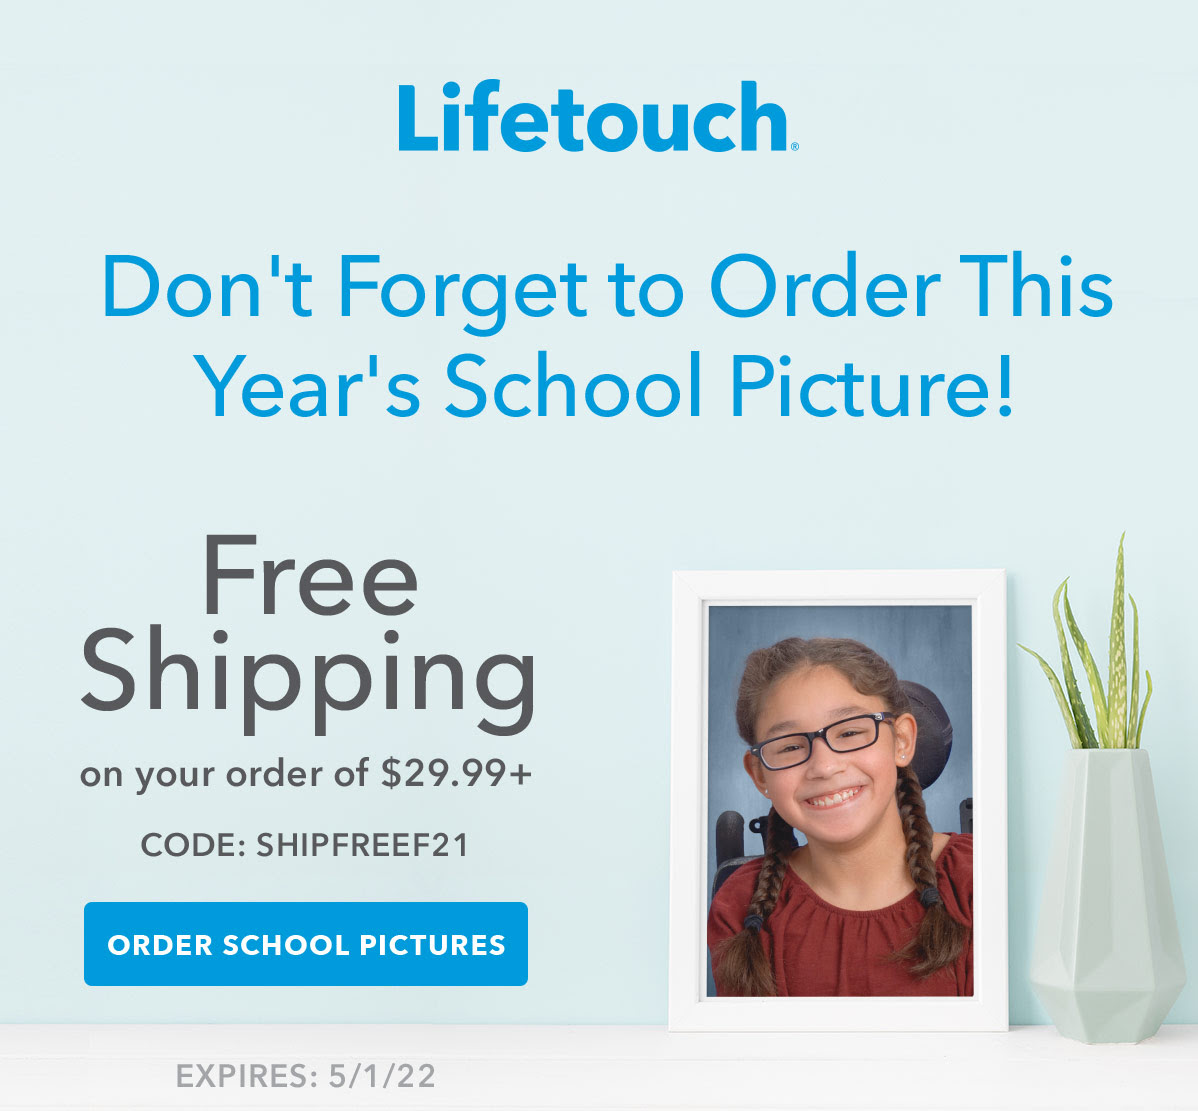 Don't Forget to Order This Year's School Picture!